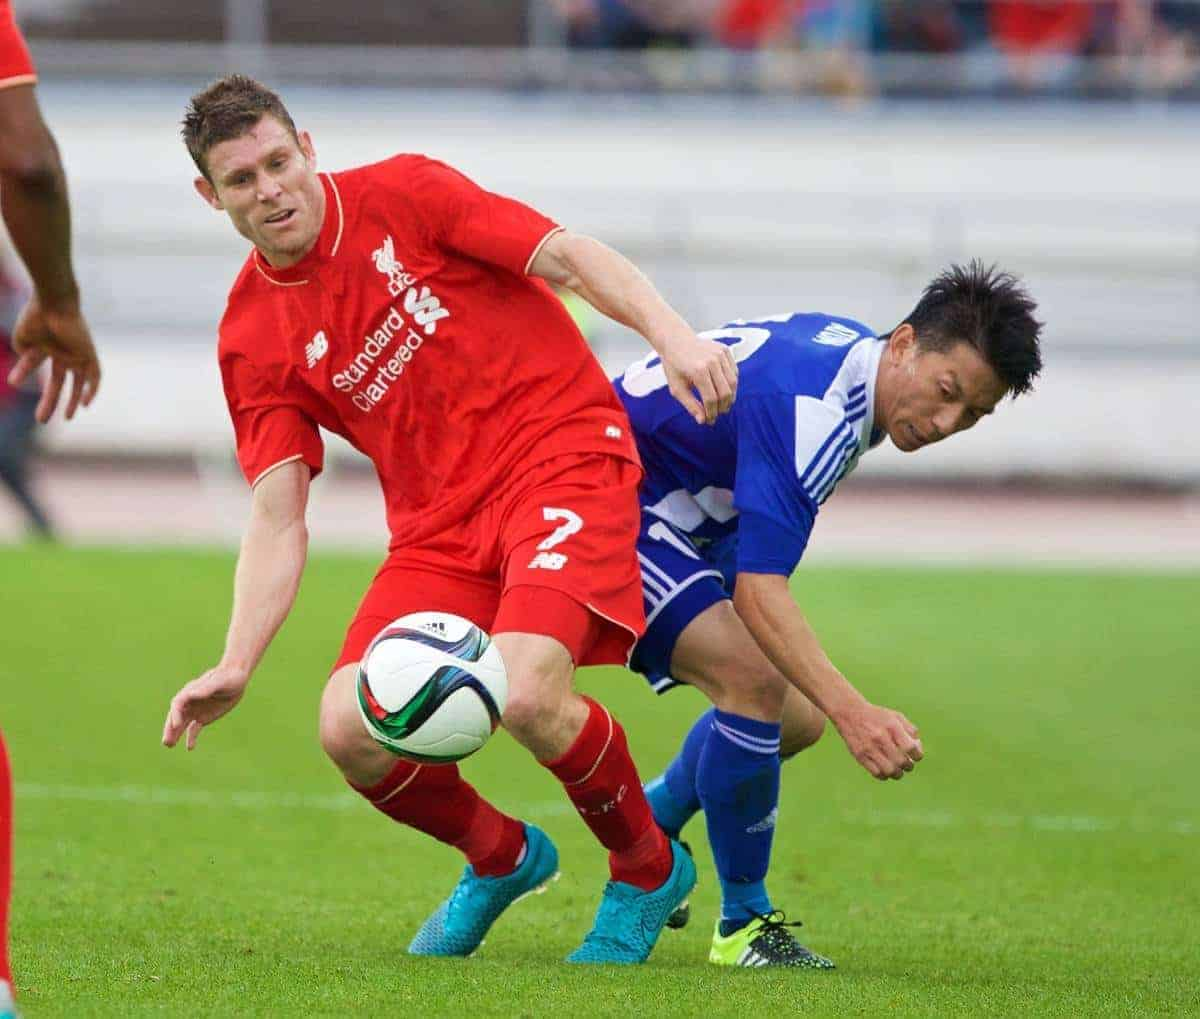 HELSINKI, FINLAND - Friday, July 31, 2015: Liverpool's James Milner in action against HJK Helsinki during a friendly match at the Olympic Stadium. (Pic by David Rawcliffe/Propaganda)